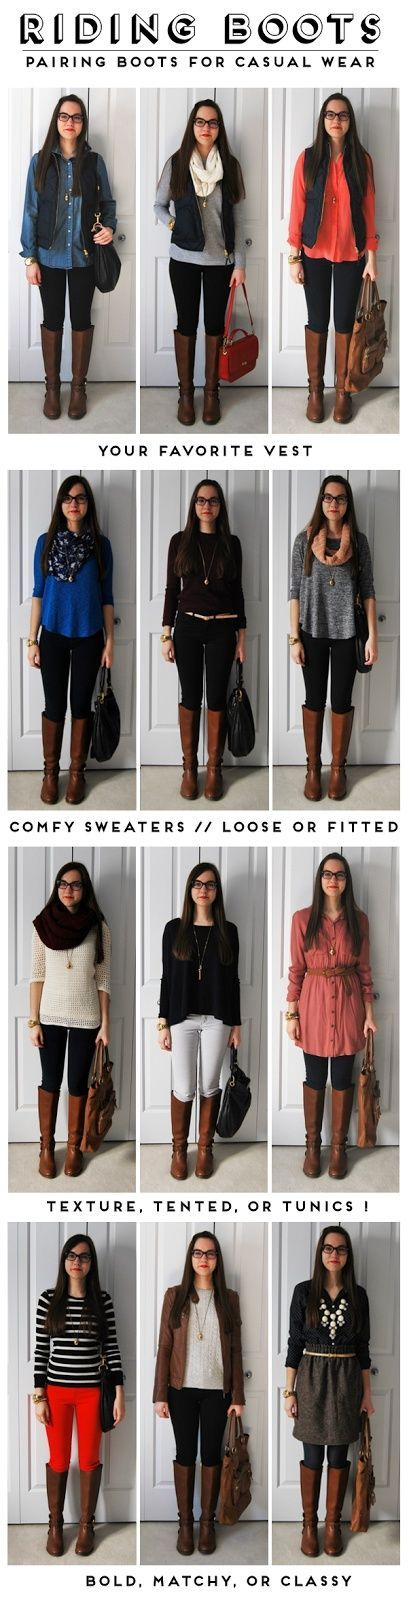 Riding boots can be worn with so many different looks! Like all of these ideas.